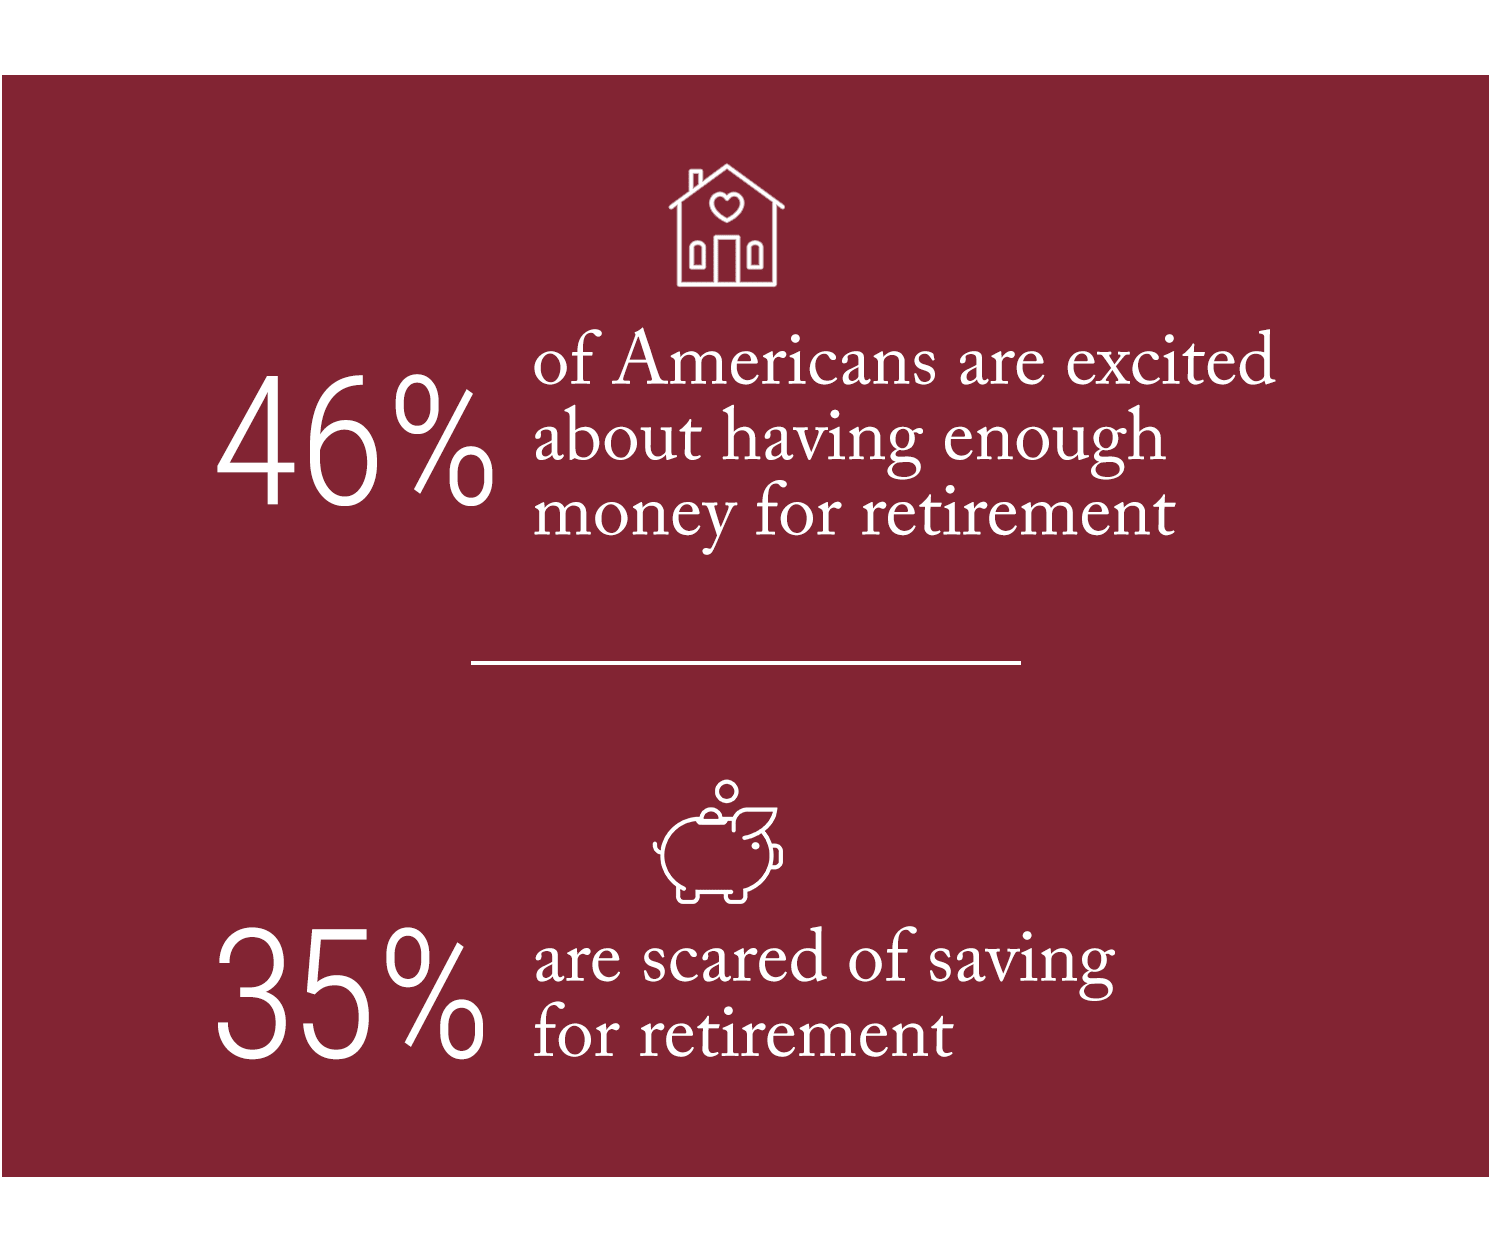 46% of Americans are excited about having enough money for retirement. 35% are scared of saving for retirement